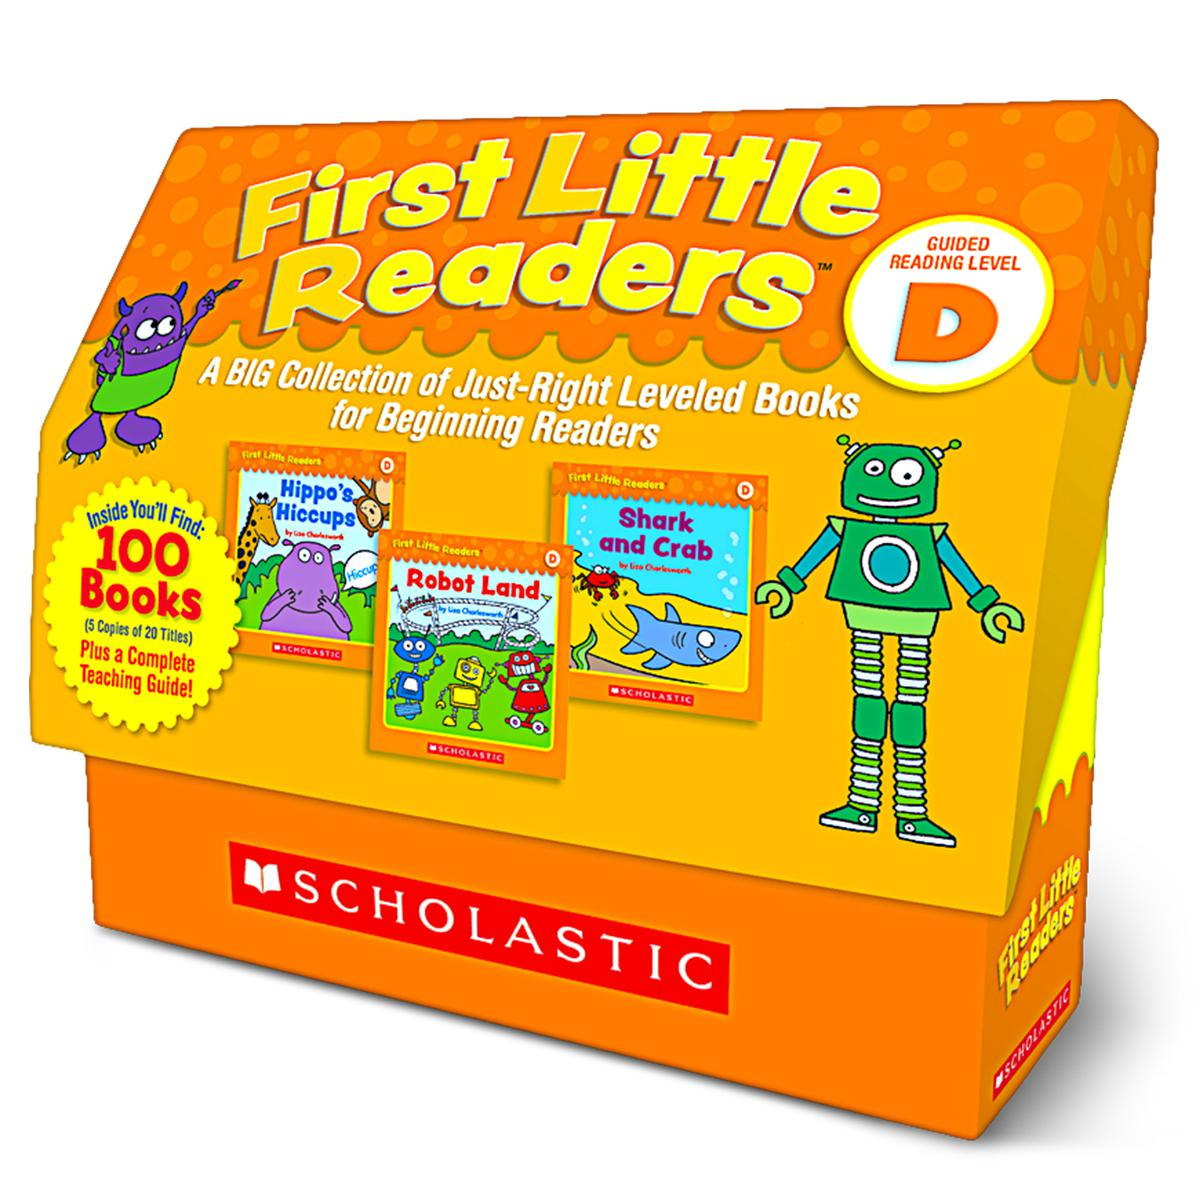 First Little Readers: Guided Reading Level D